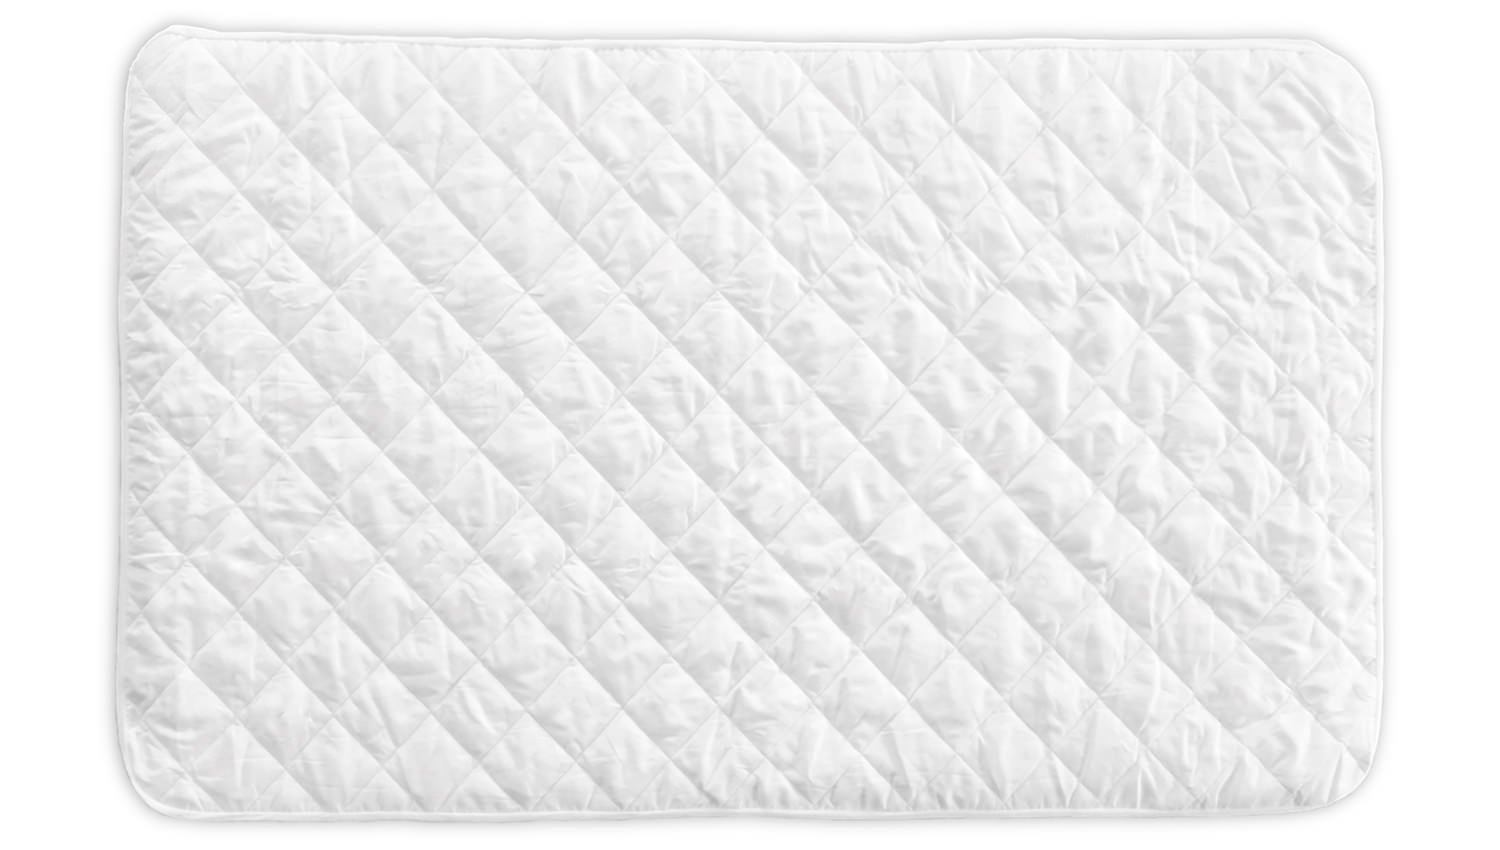 Little One's Pad Pack N Play Crib Mattress Cover - Fits ALL Baby Portable Cribs, Mini and Foldable Mattresses - Waterproof, Dryer Safe and Hypoallergenic - Comfy and Soft Fitted Crib Protector